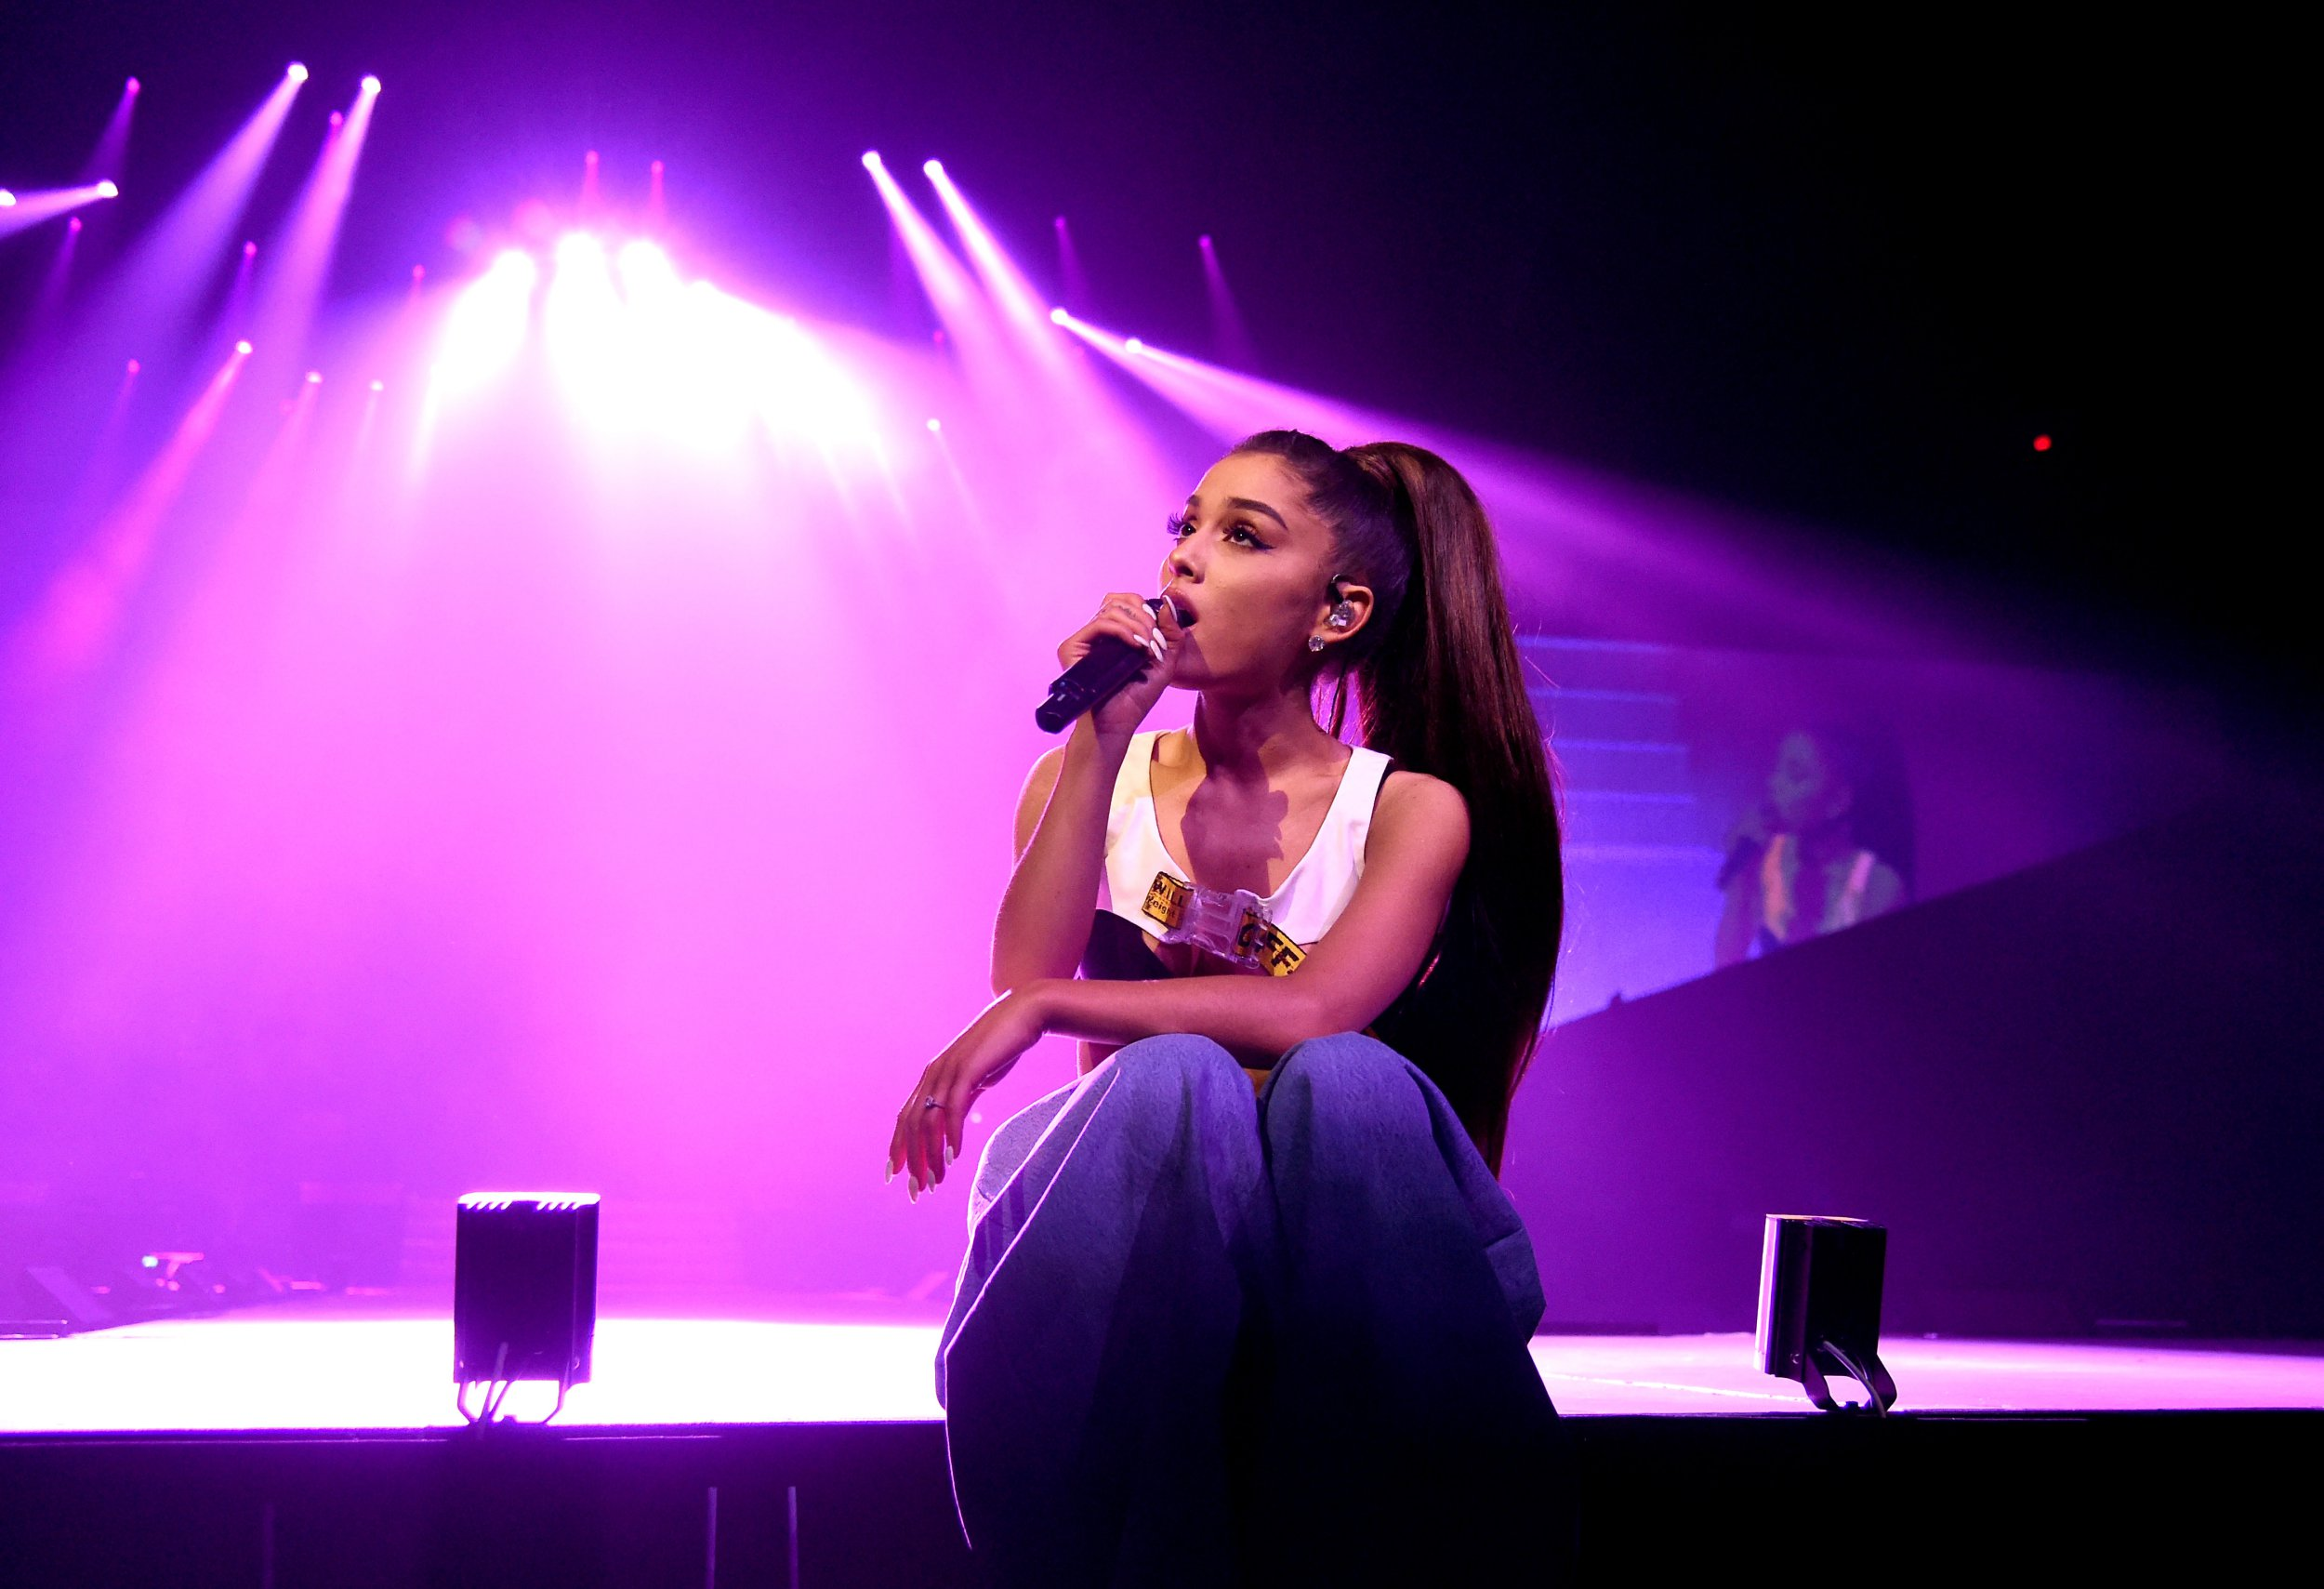 Ariana Grande's dedicated fans are already camping outside the One Love Manchester venue